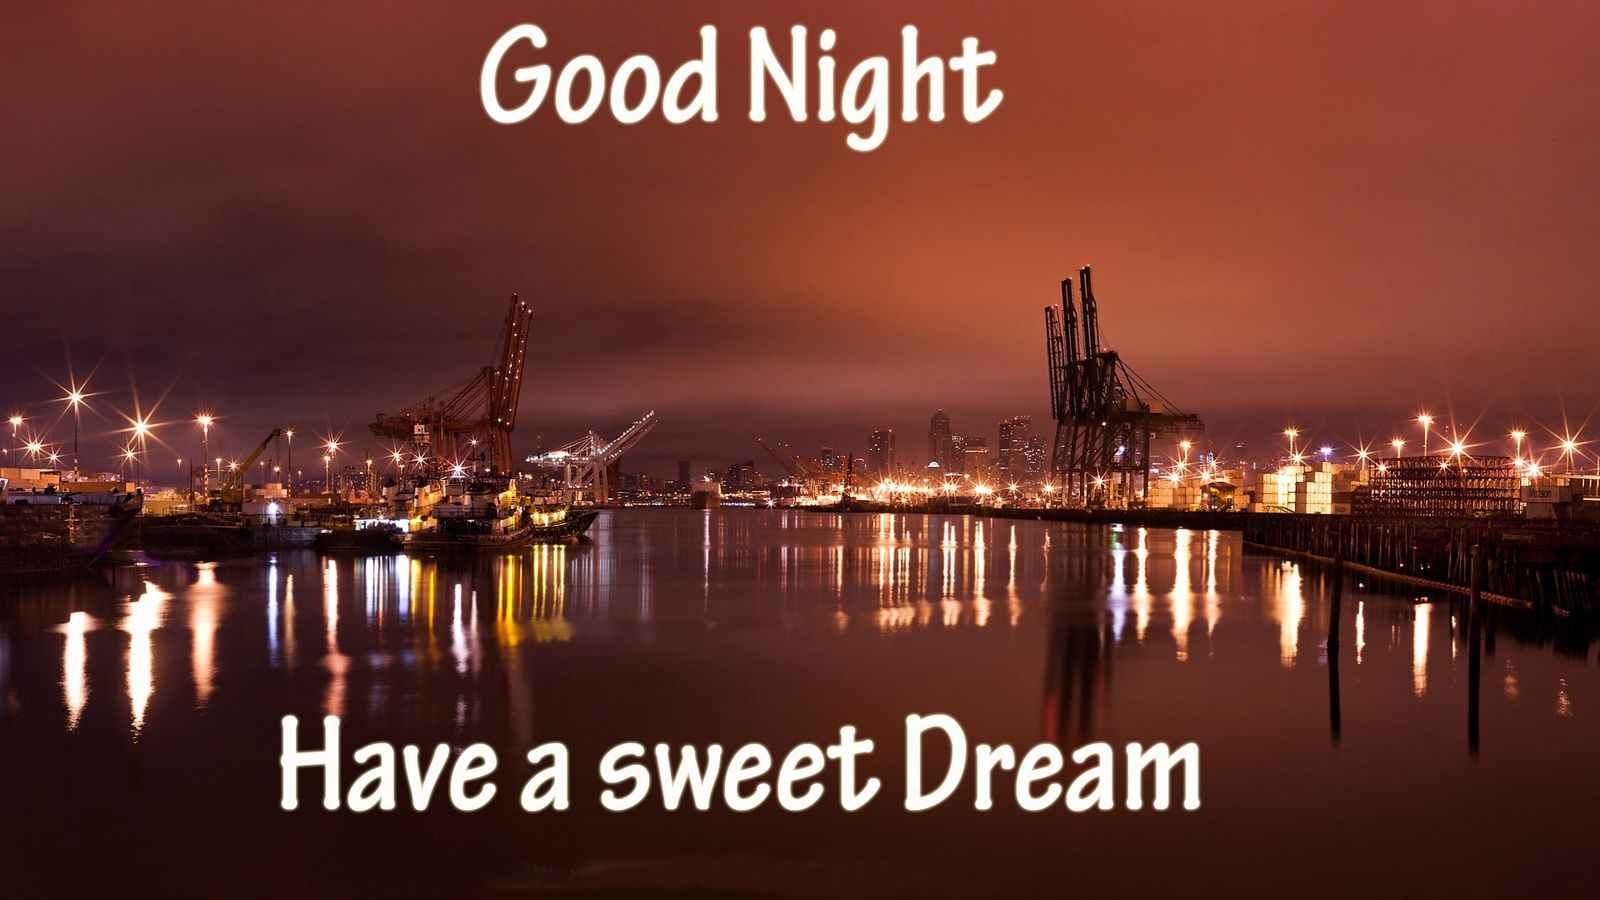 Good Night - Have a sweet Dream - Wallpaper - Free